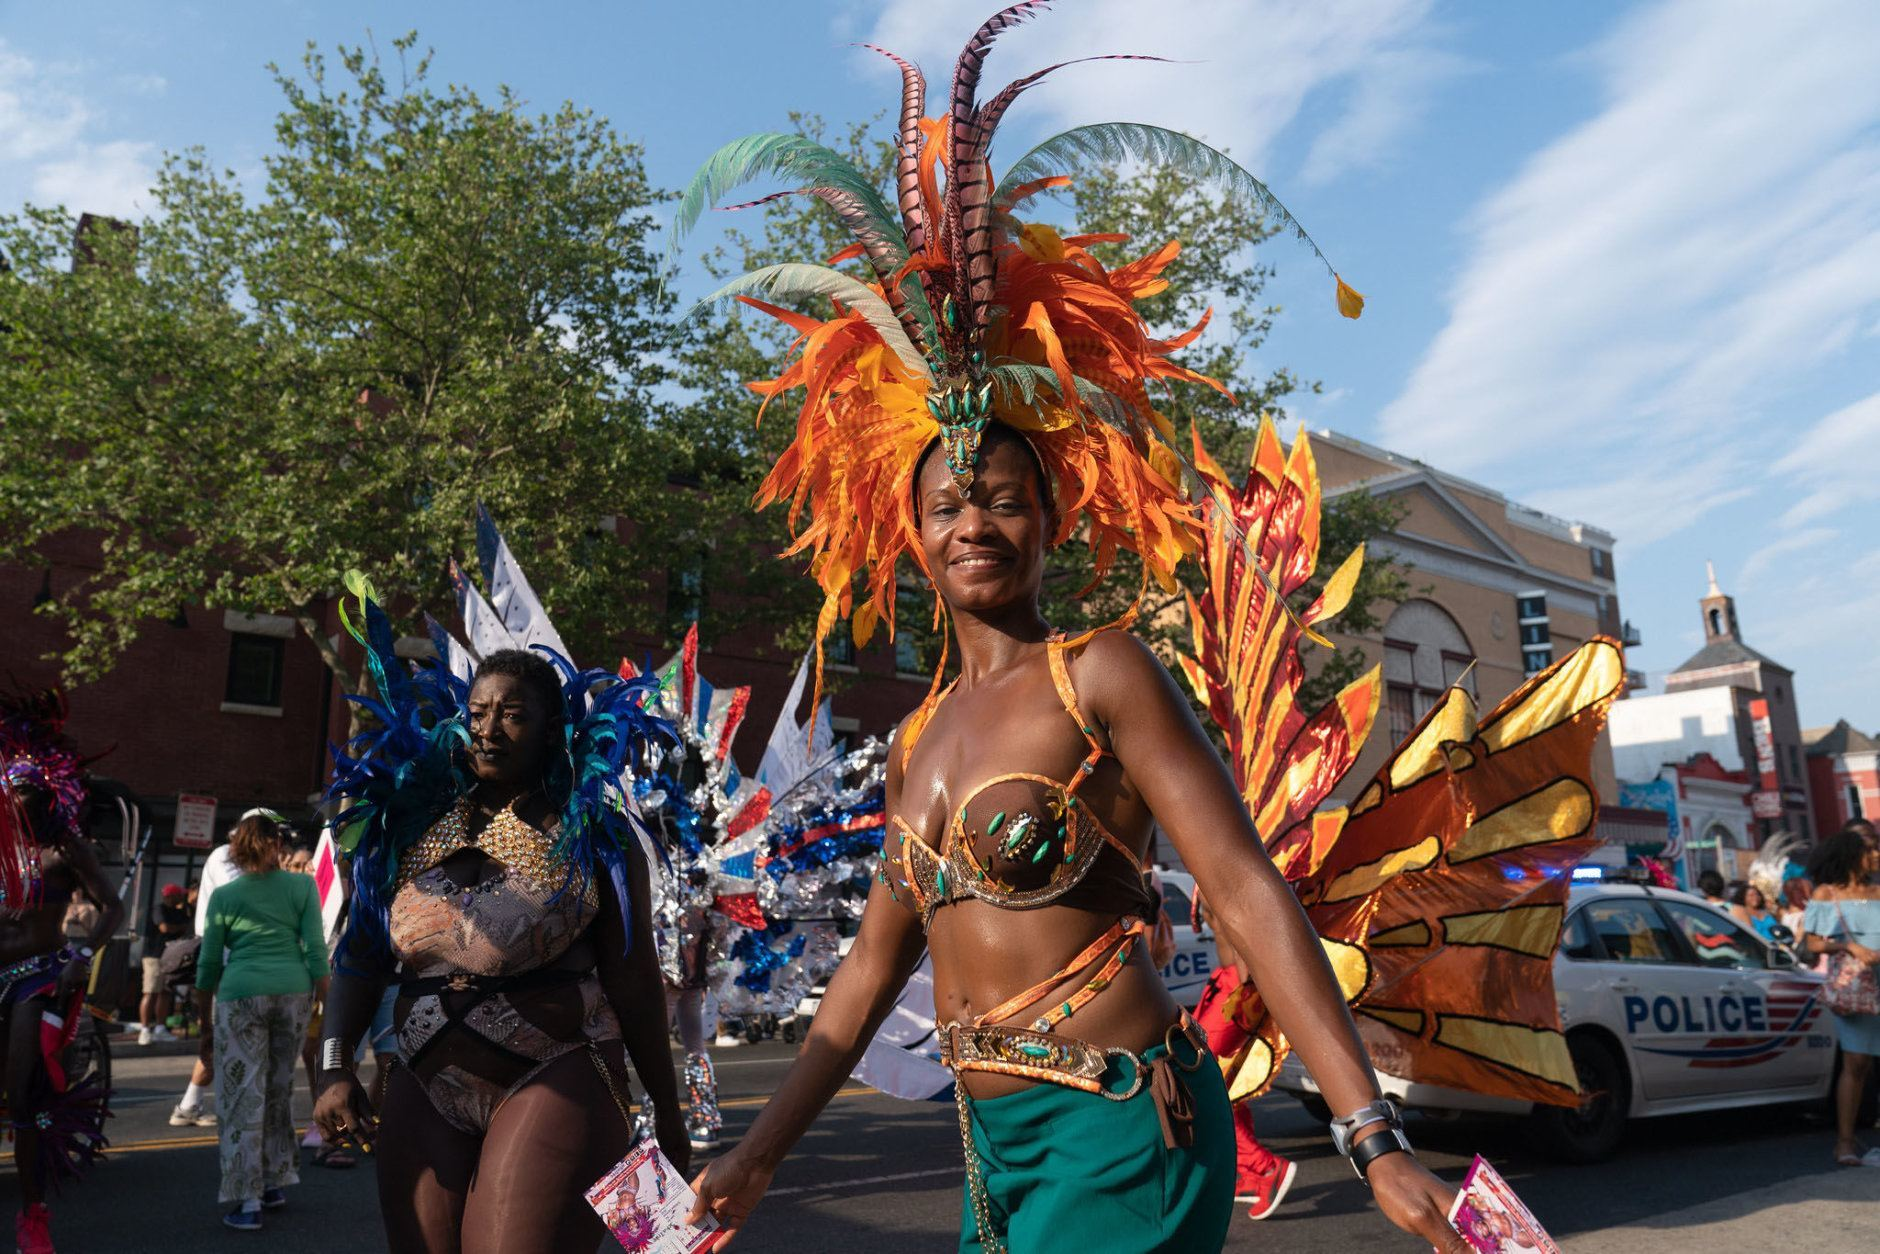 Marchers at the 2018 D.C. Funk Parade. (Courtesy Lorie Shaull)